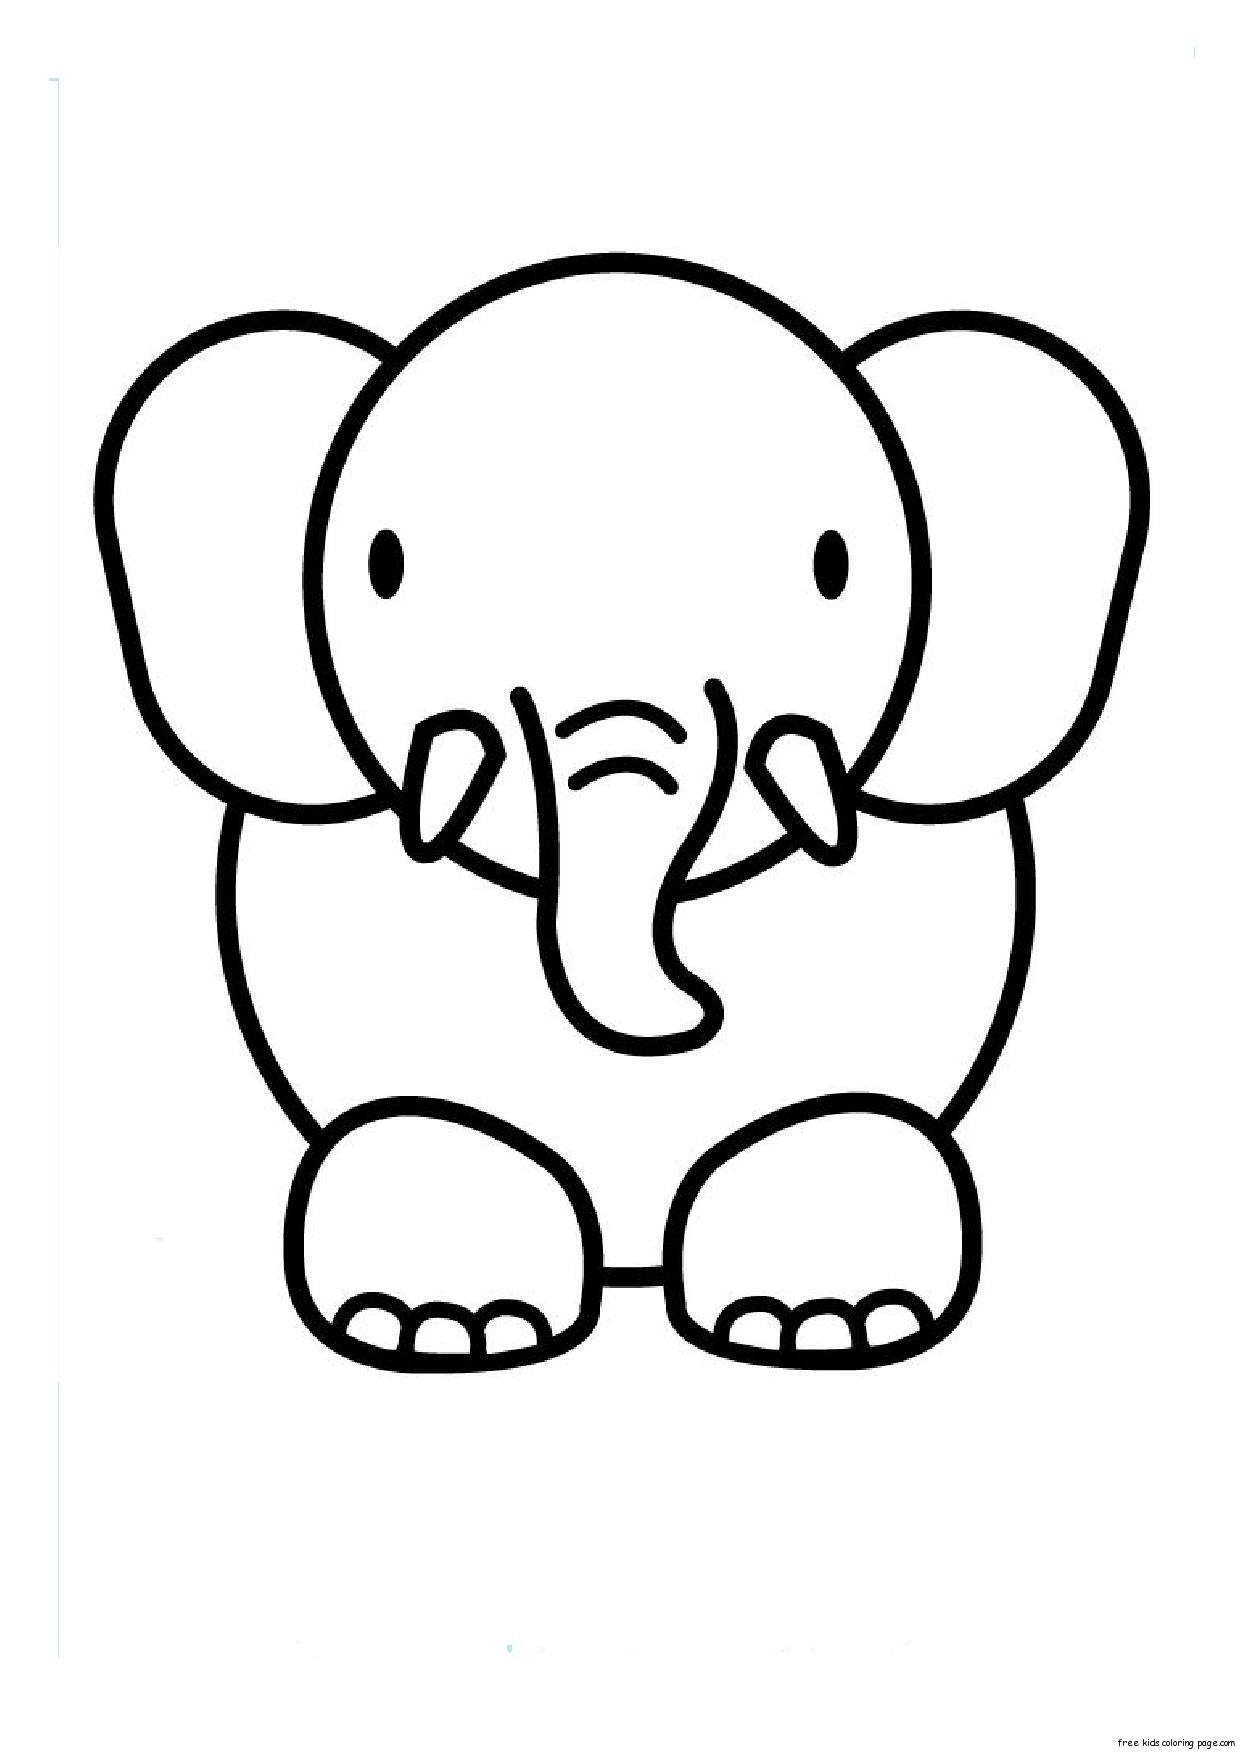 print out animal elephant coloring pages for kidsfree printable